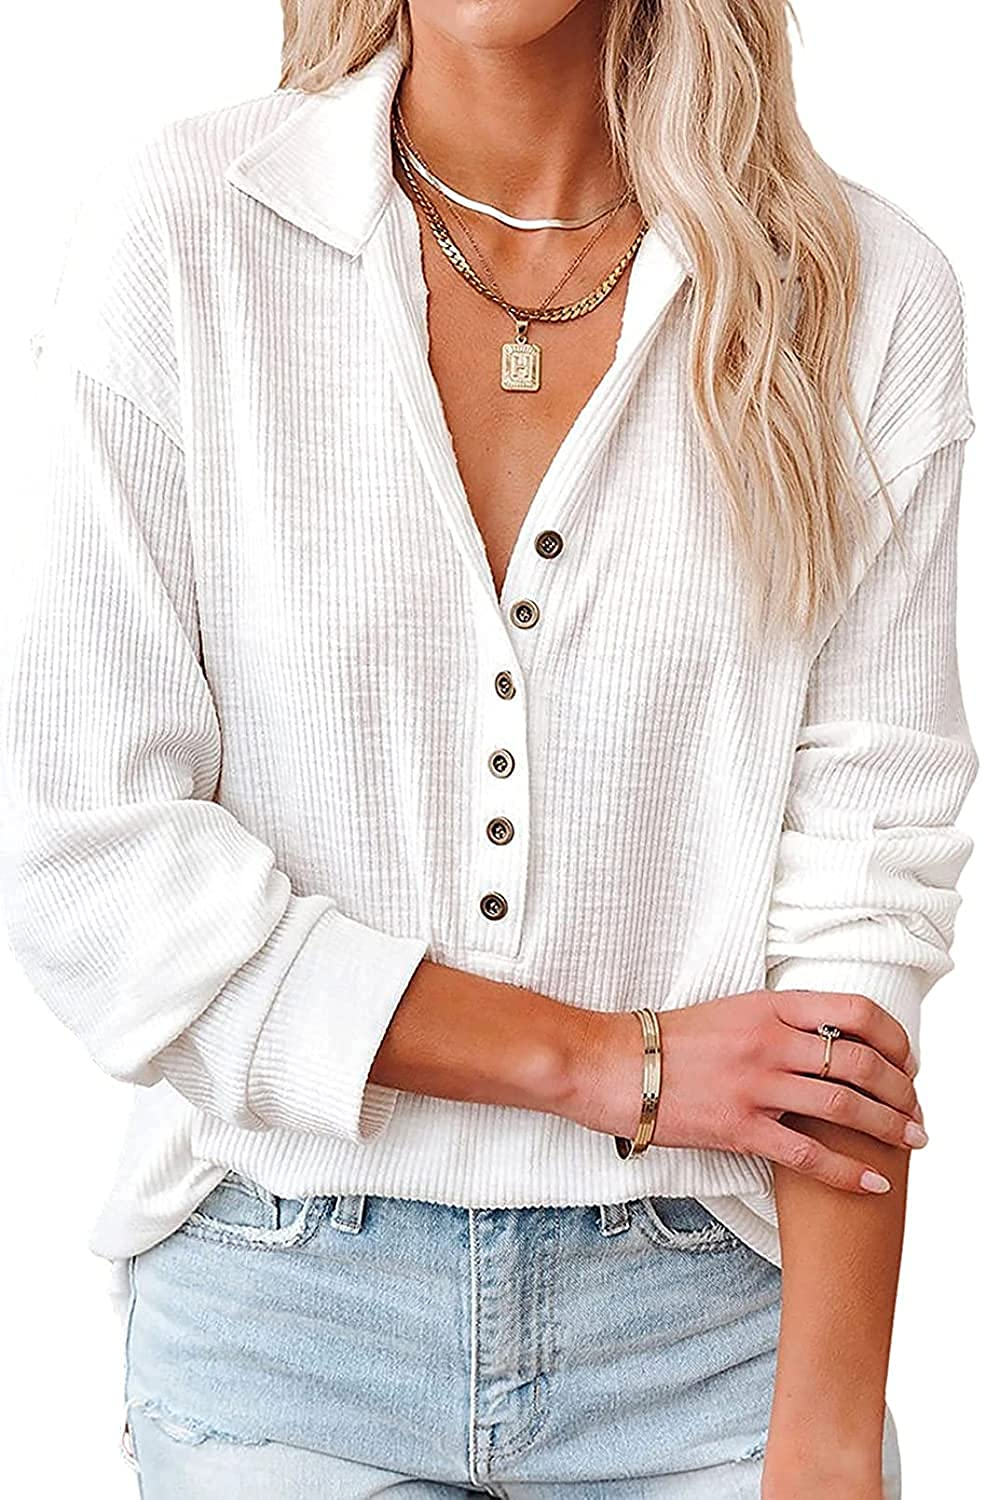 Women's Button Down V Neck Blouses Long Sleeves Ribbed Knit Loose Fit Casual Shirt Tops